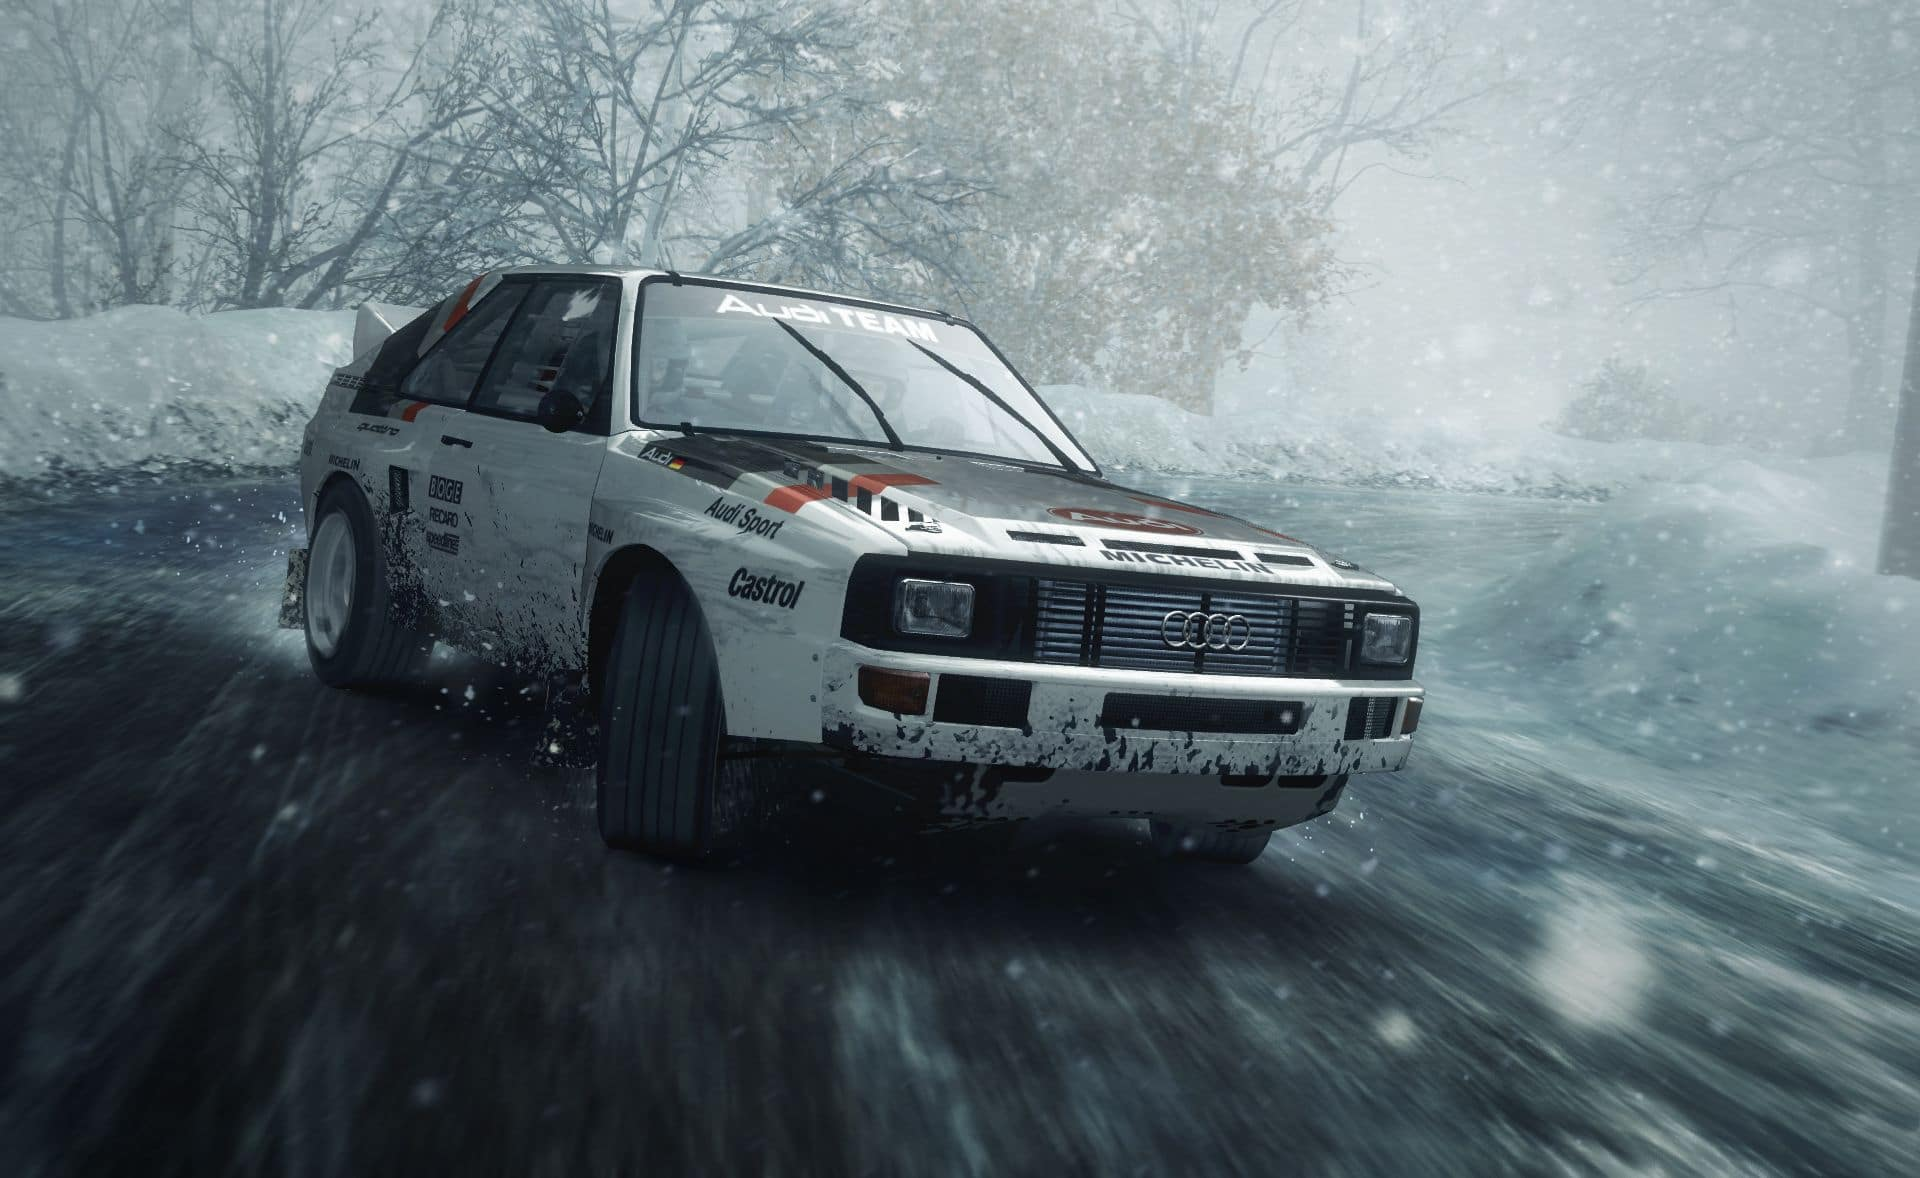 de tr s bonnes critiques pour dirt rally. Black Bedroom Furniture Sets. Home Design Ideas